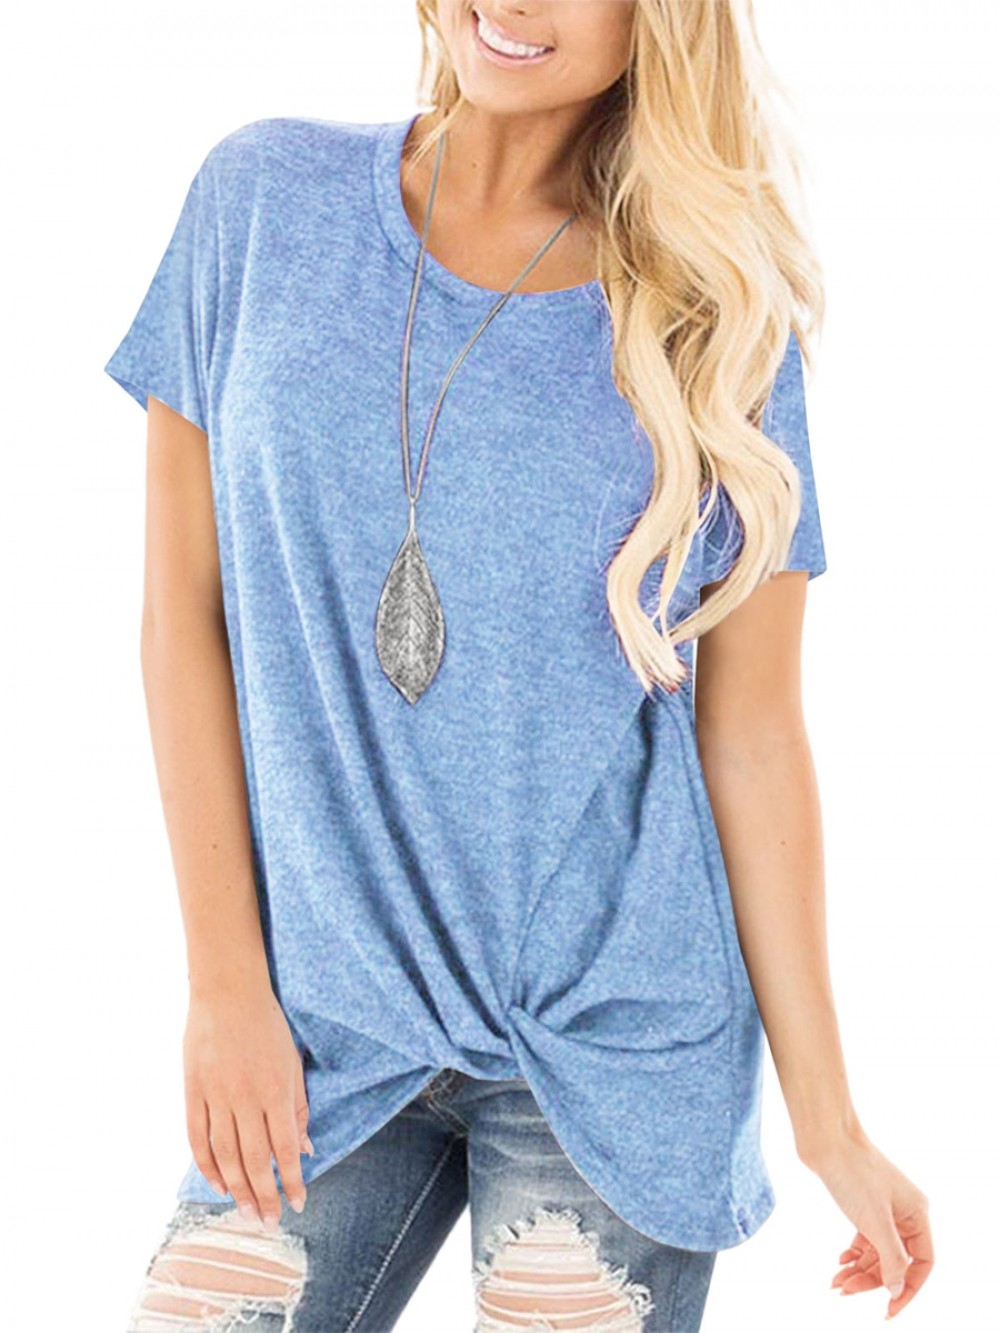 Blue Shirt Crew Neck Solid Color For Women